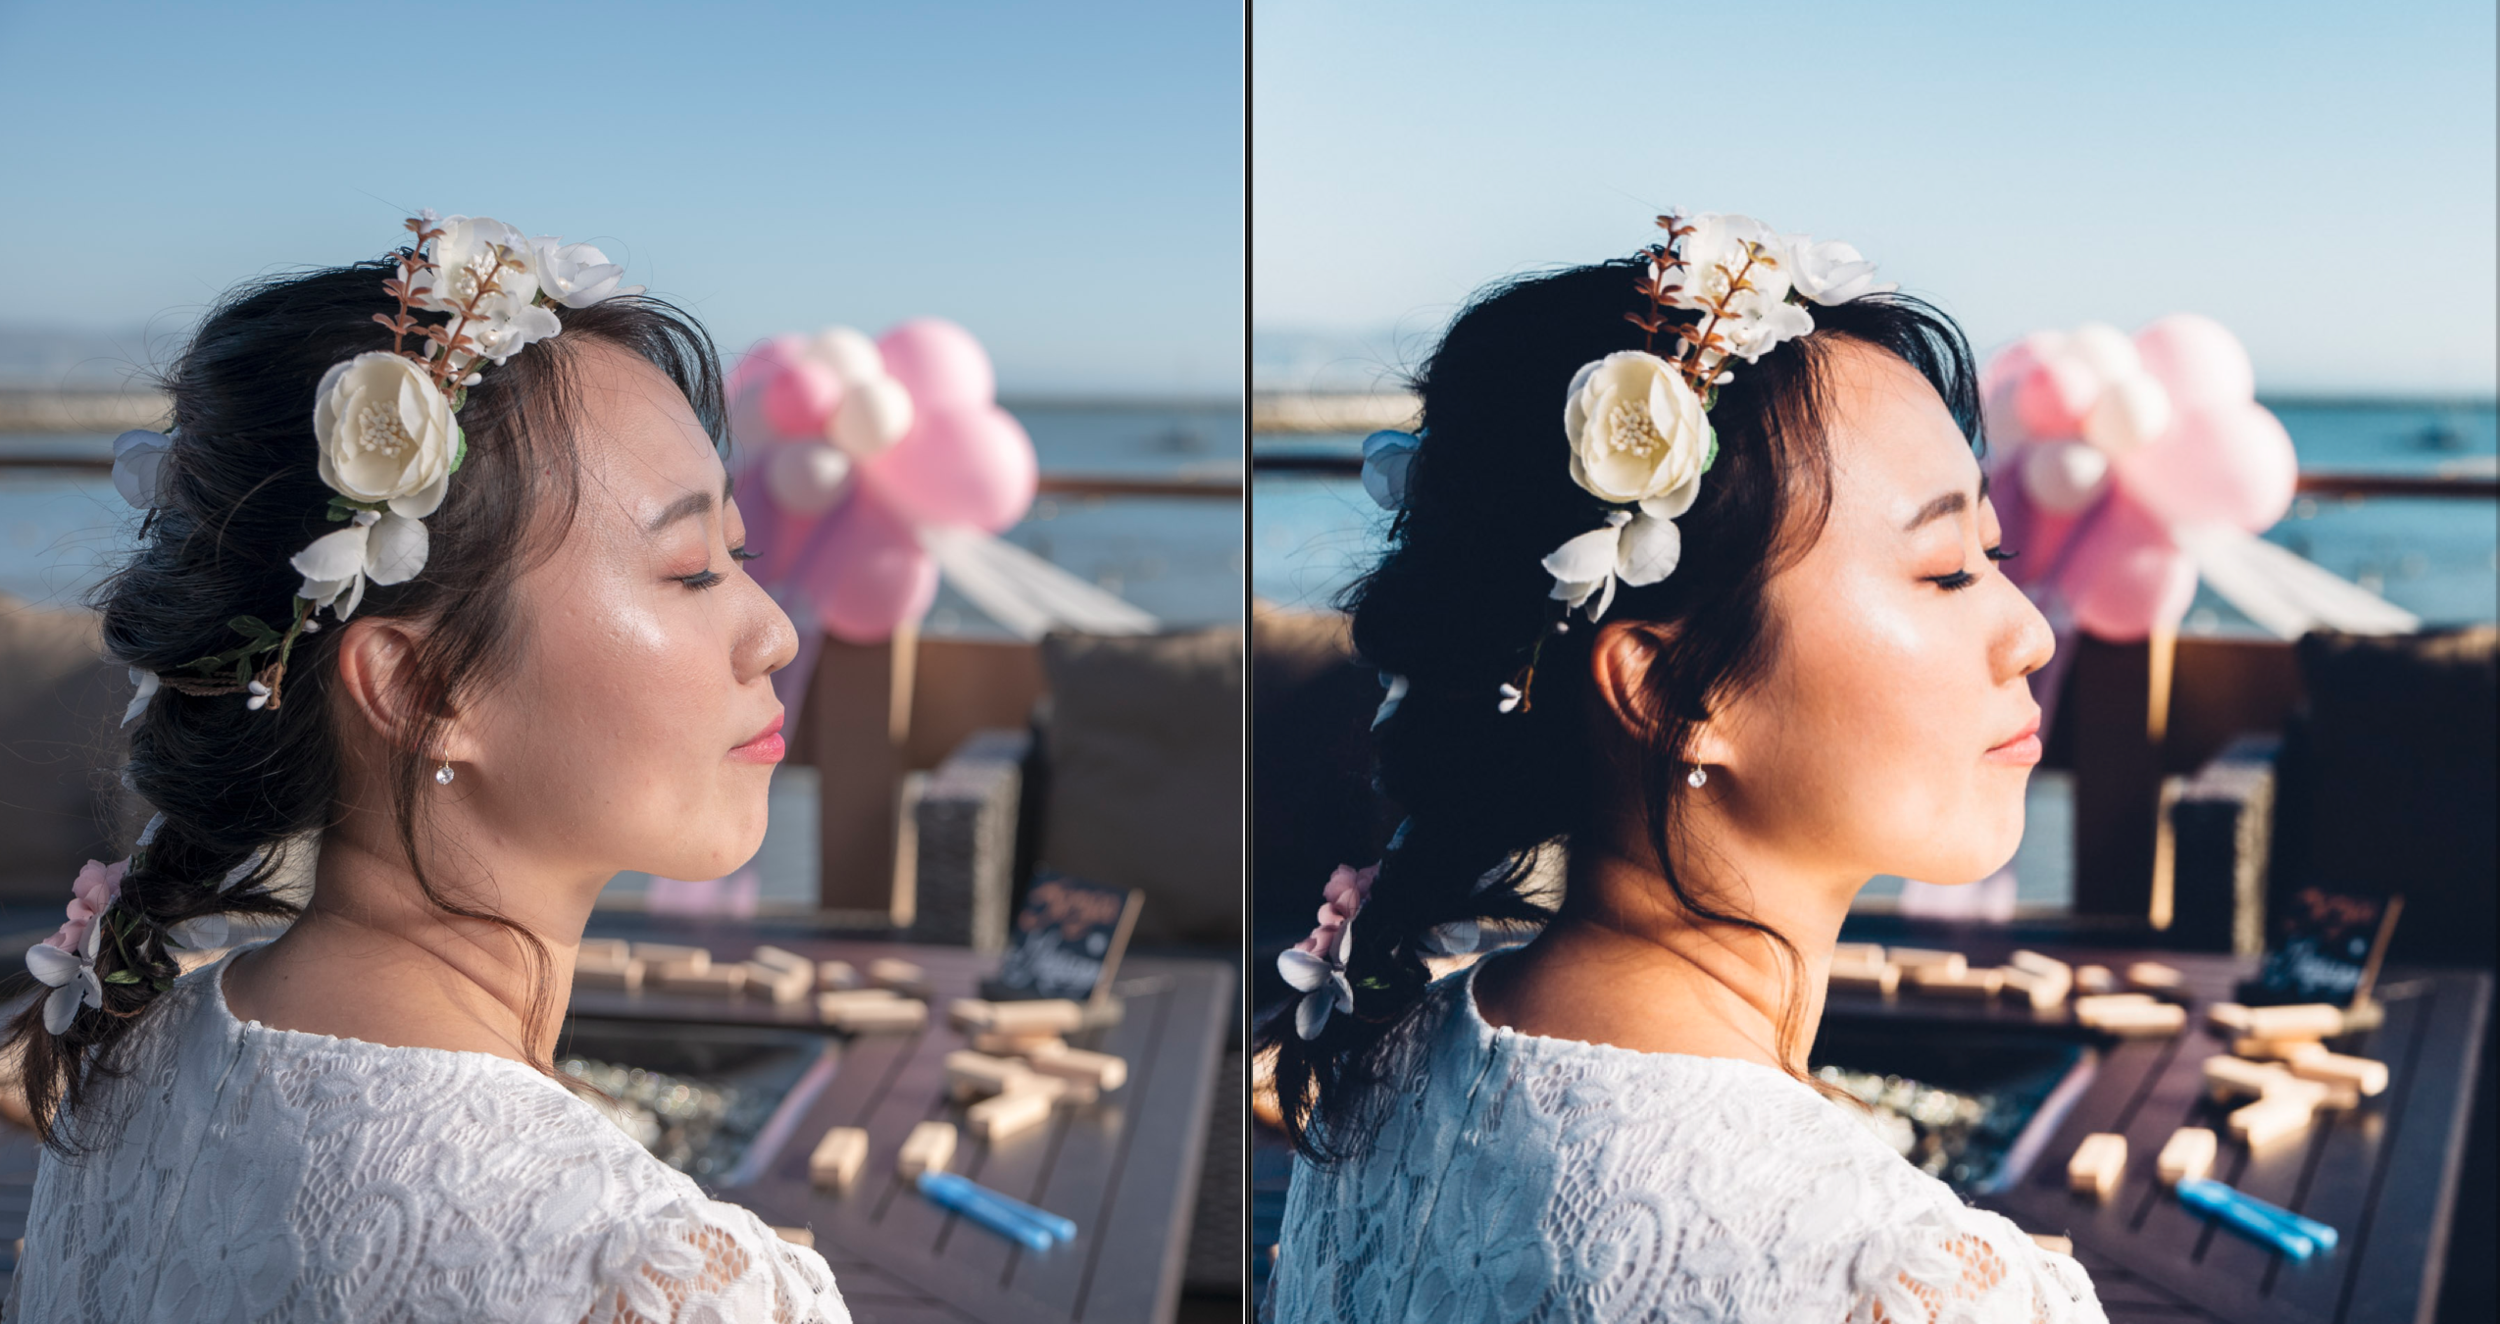 Optimizing contrast, brightness, and tone. (Edited photo on right).